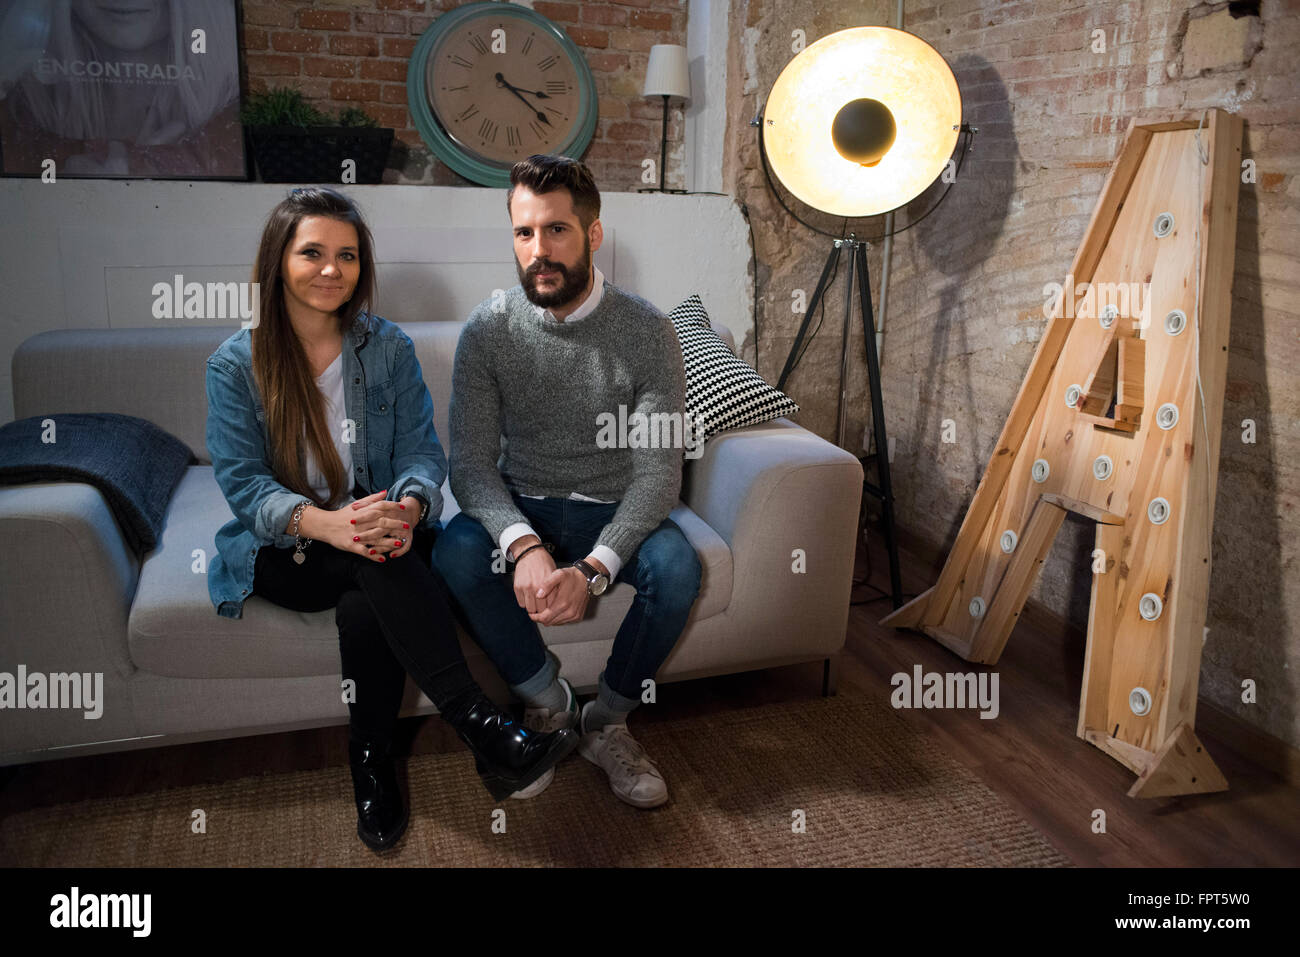 Hillsong Church Barcelona, Spain. Juan Mejías and Damsy Mich, Lead Pastors in Barcelona. Hillsong Church is - Stock Image